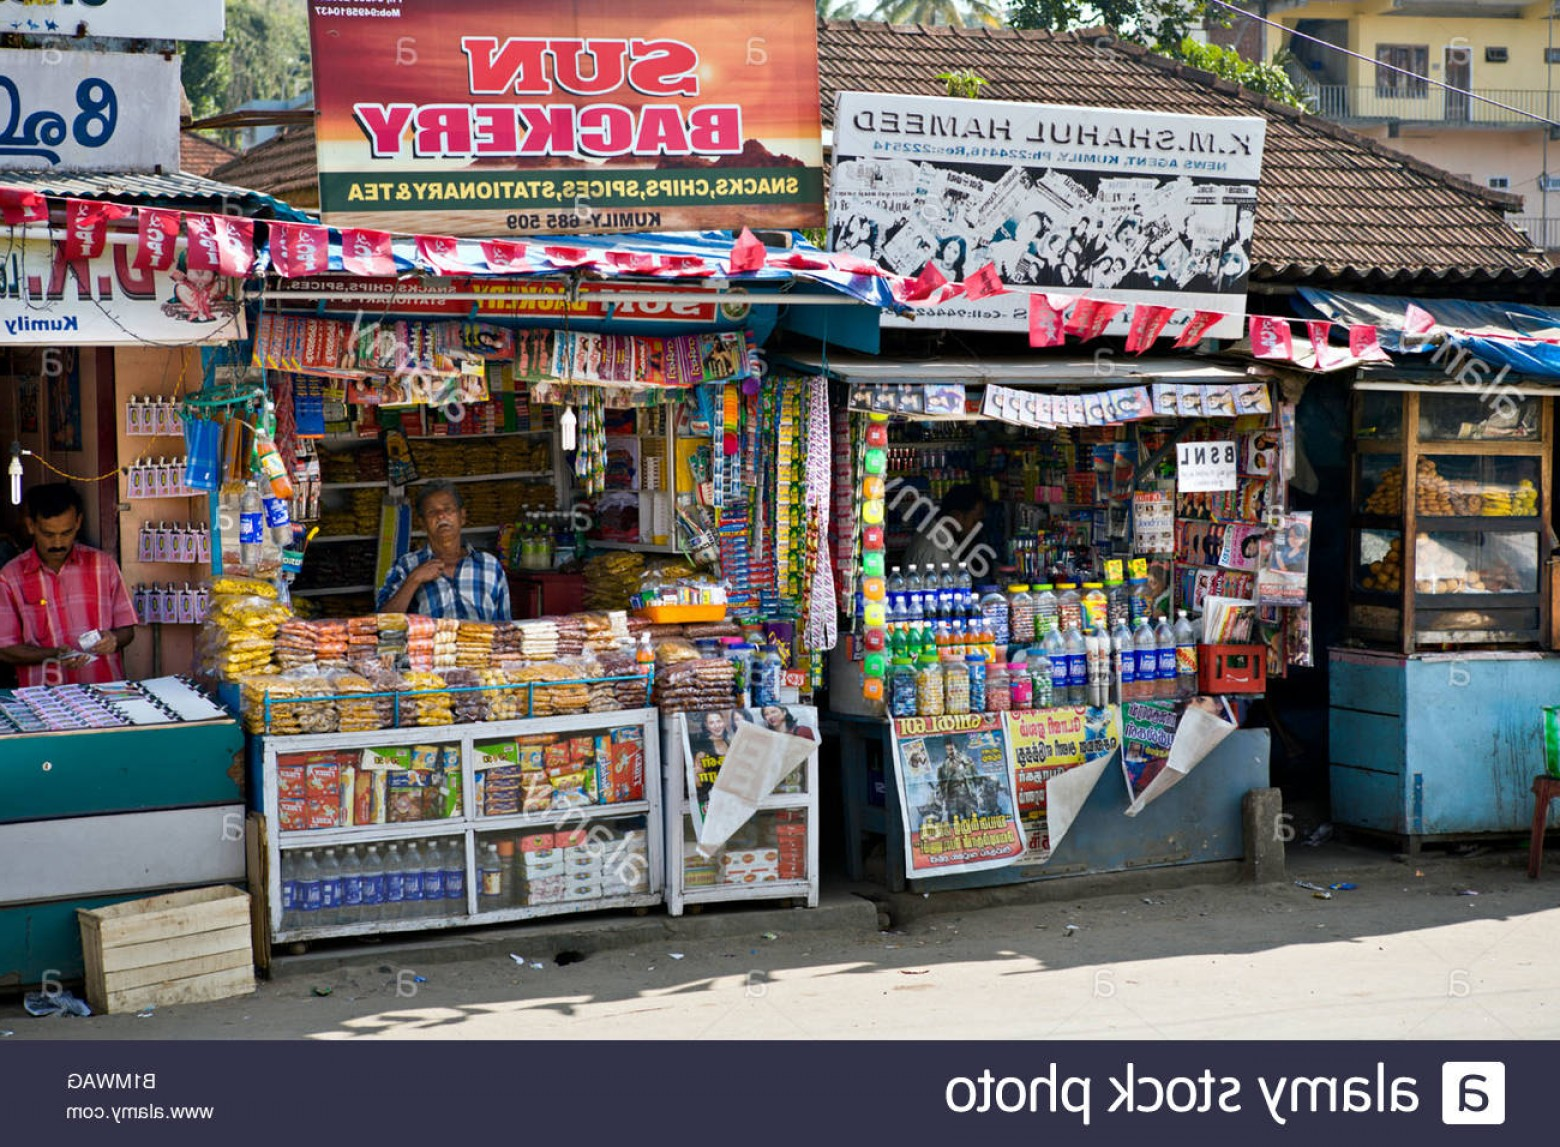 Vector Newspapers Snacks: Stock Photo India Kumily Kerala Tiny Colorful Shops Selling Snacks Chips Spices